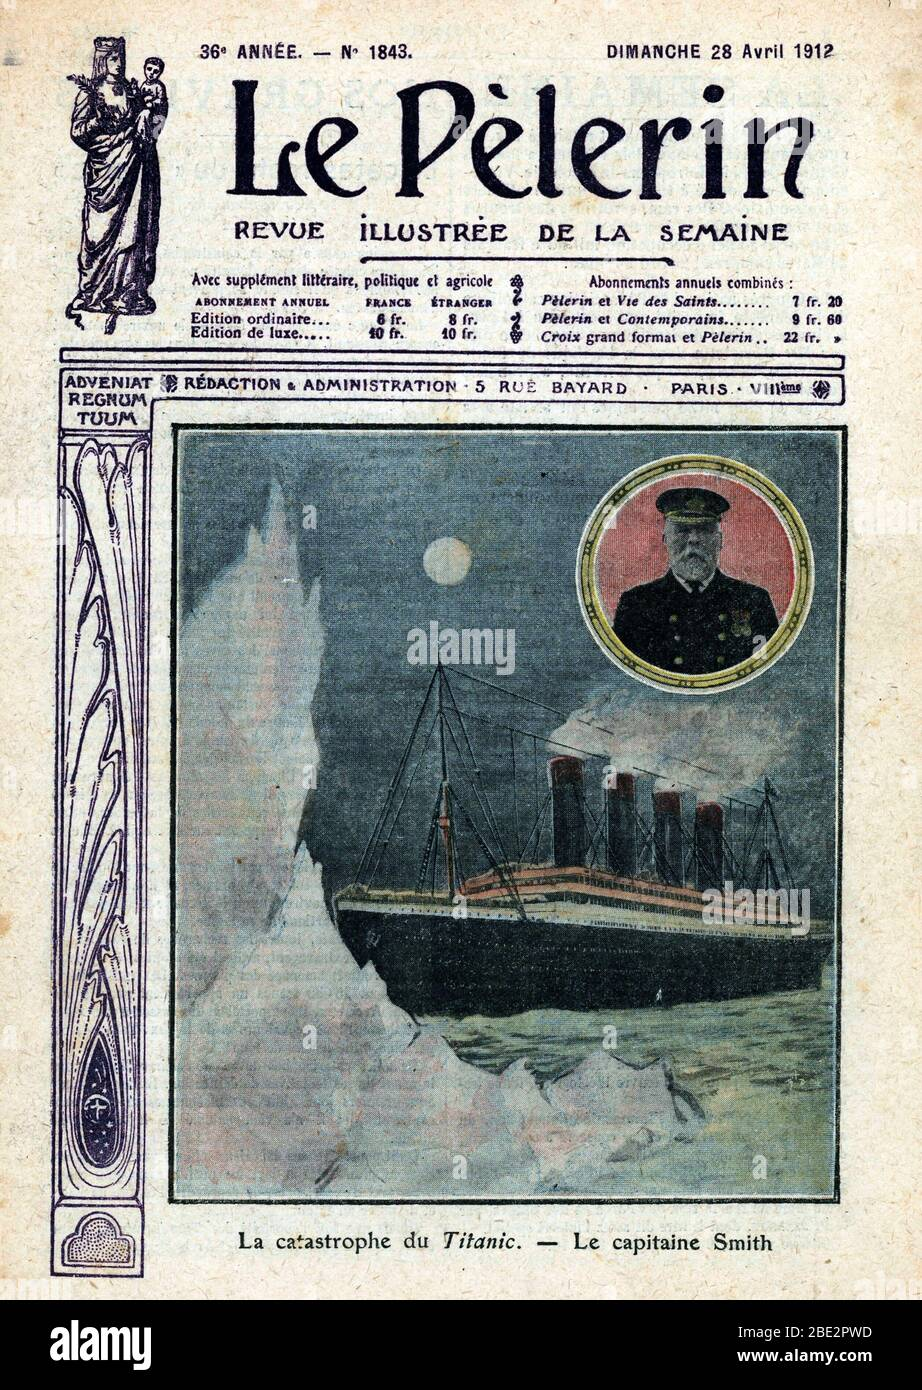 TITANIC Sinking Sea Disaster CD 11 Vintage Old Antiquarian Rare Book Collection